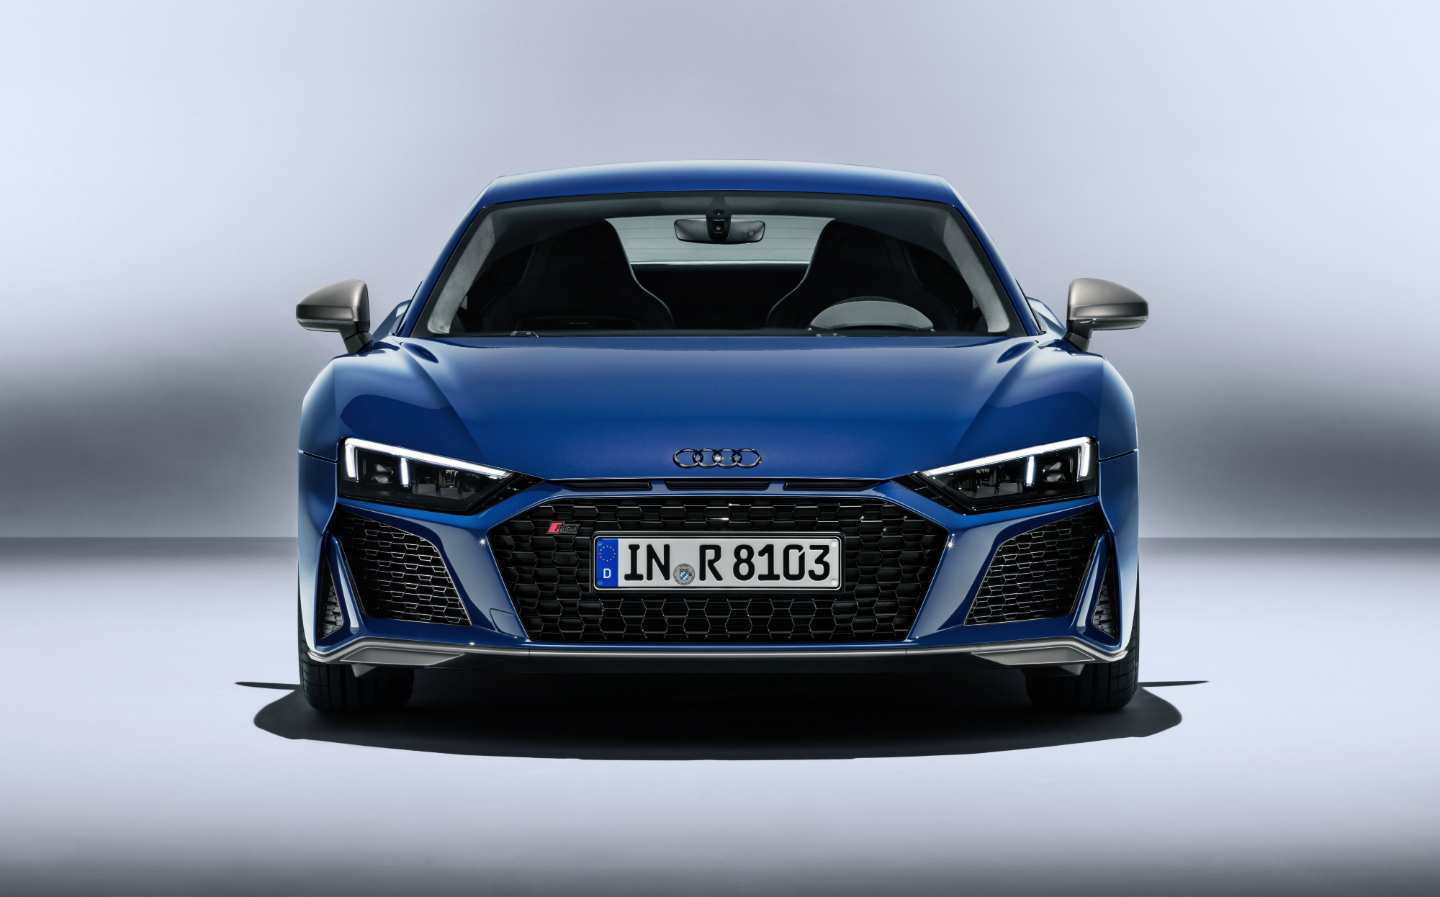 77 Best Review The Audi 2019 Lights Release Specs And Review Images for The Audi 2019 Lights Release Specs And Review